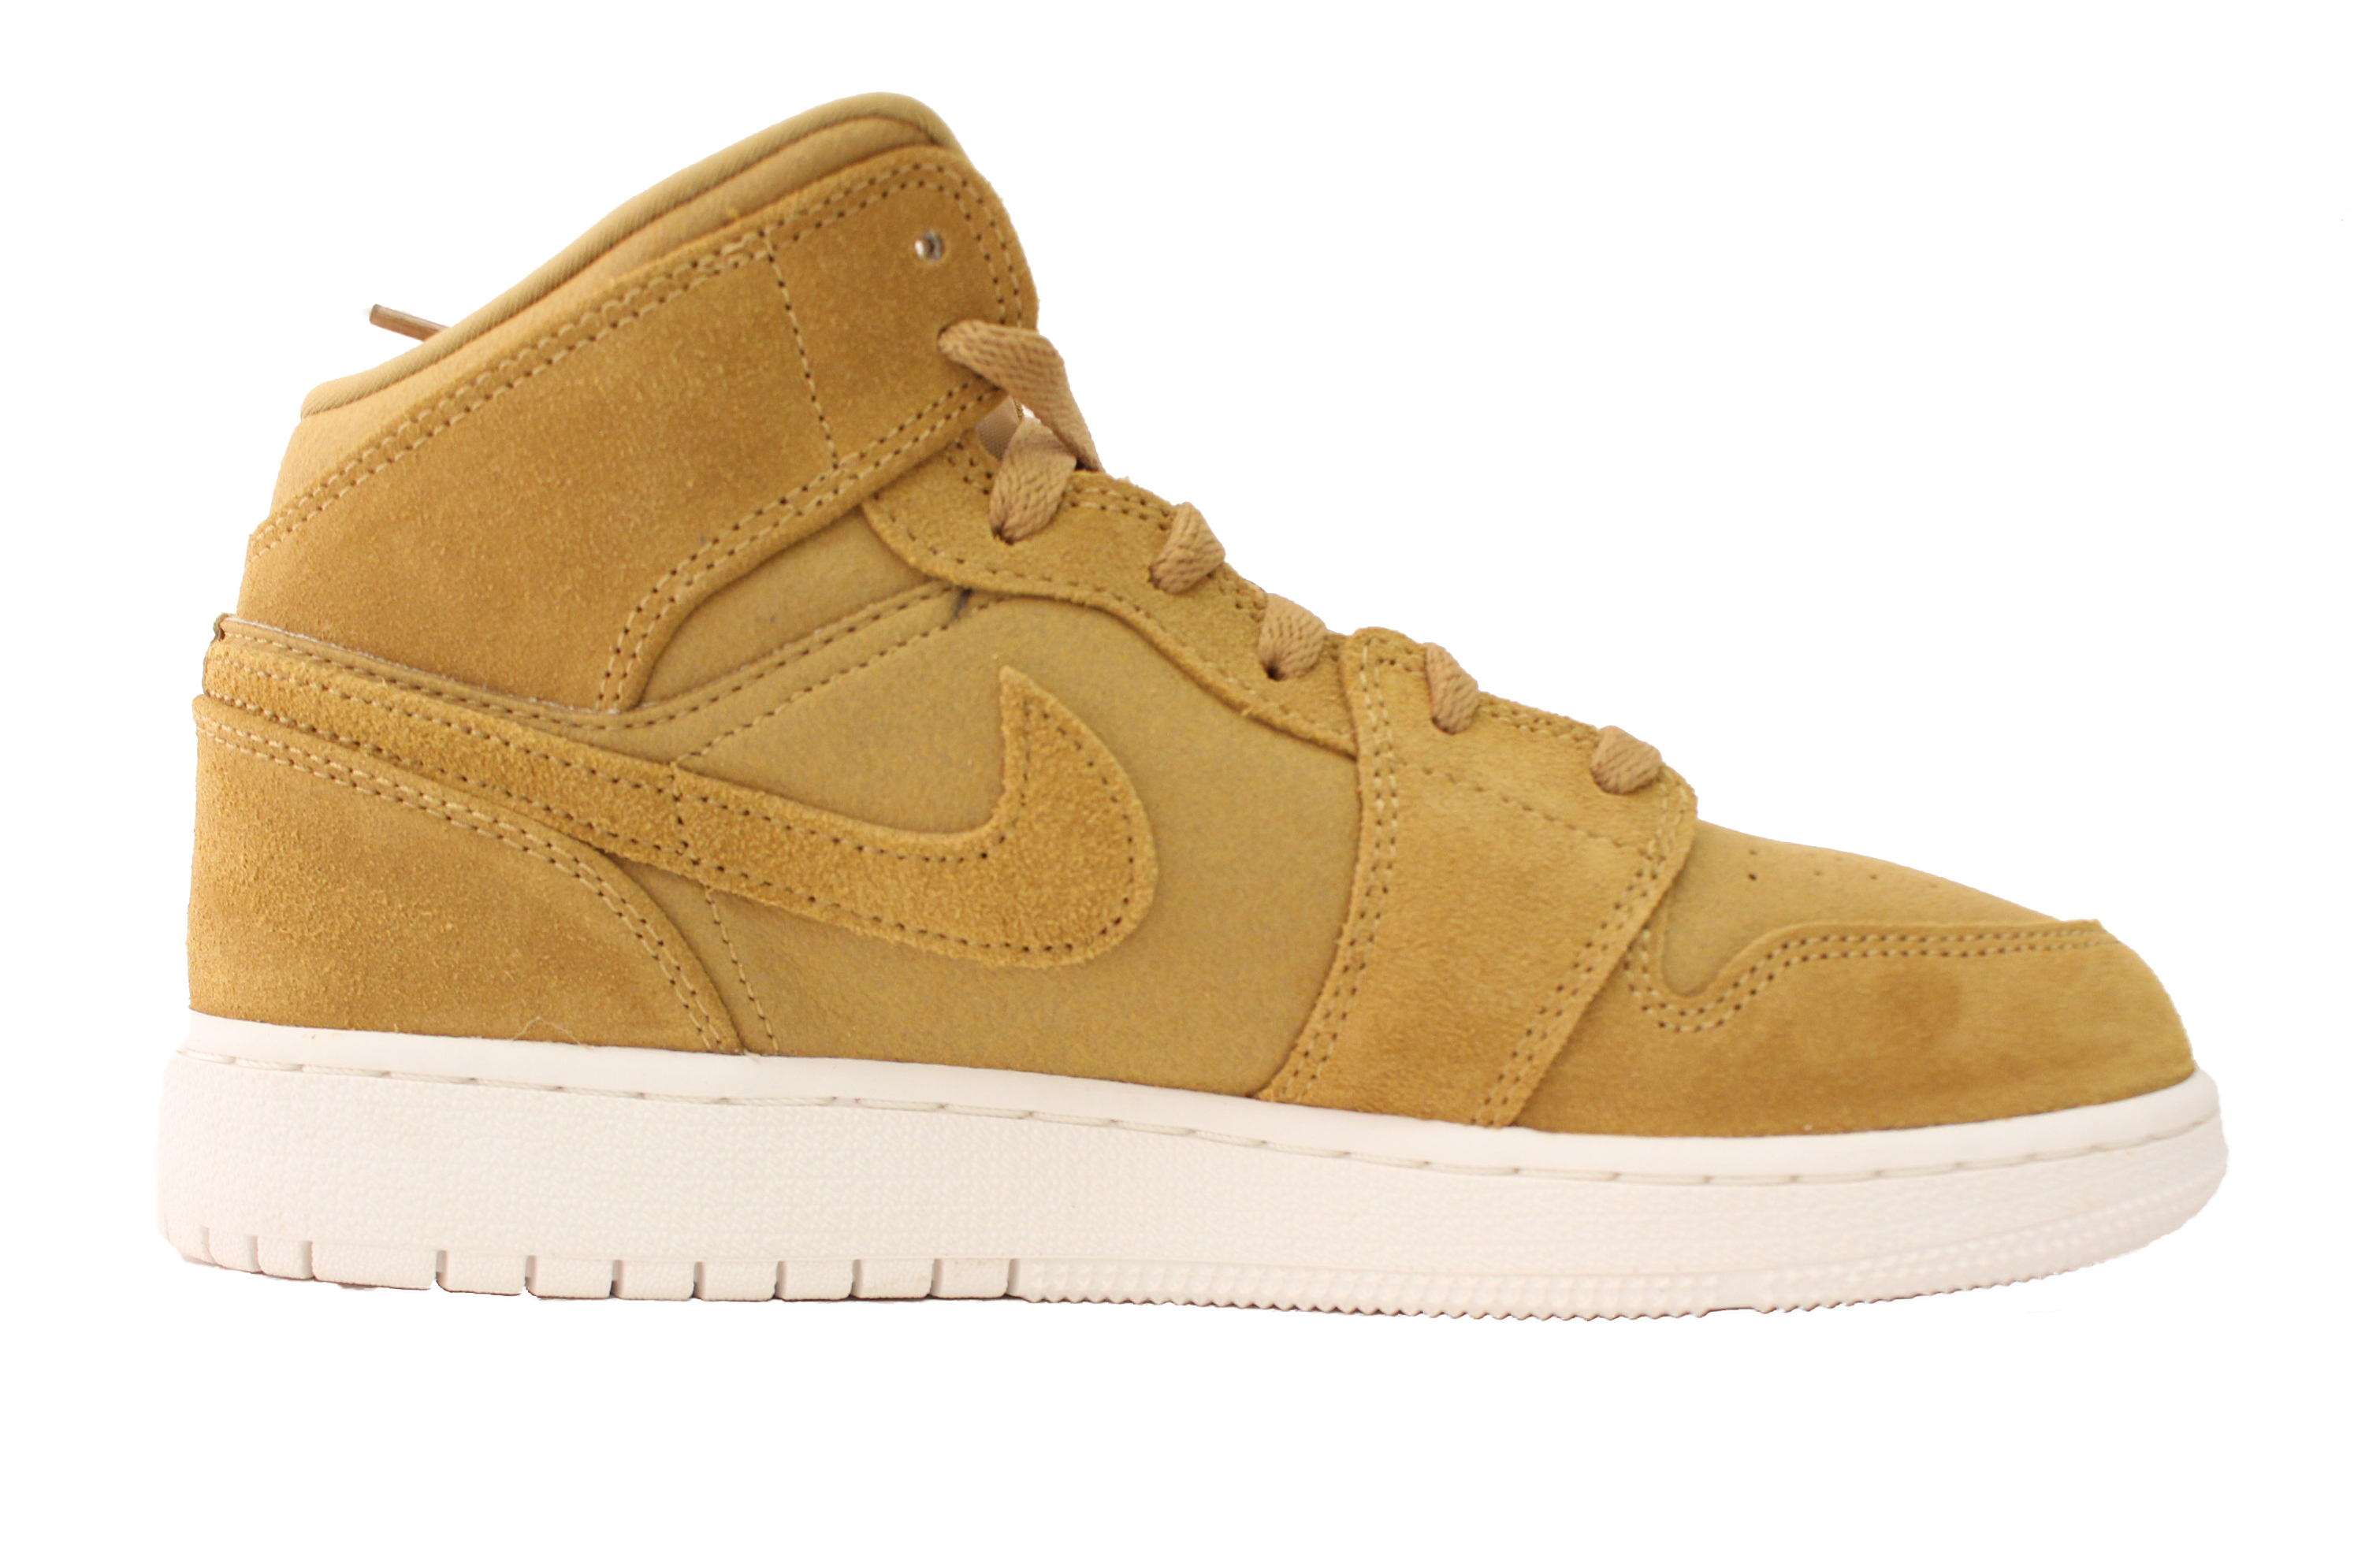 NIKE AIR JORDAN RETRO YOUTH 1 MID GS 6 YOUTH RETRO GOLDEN HARVEST WHEAT FLAX 554725 725 aa8cac